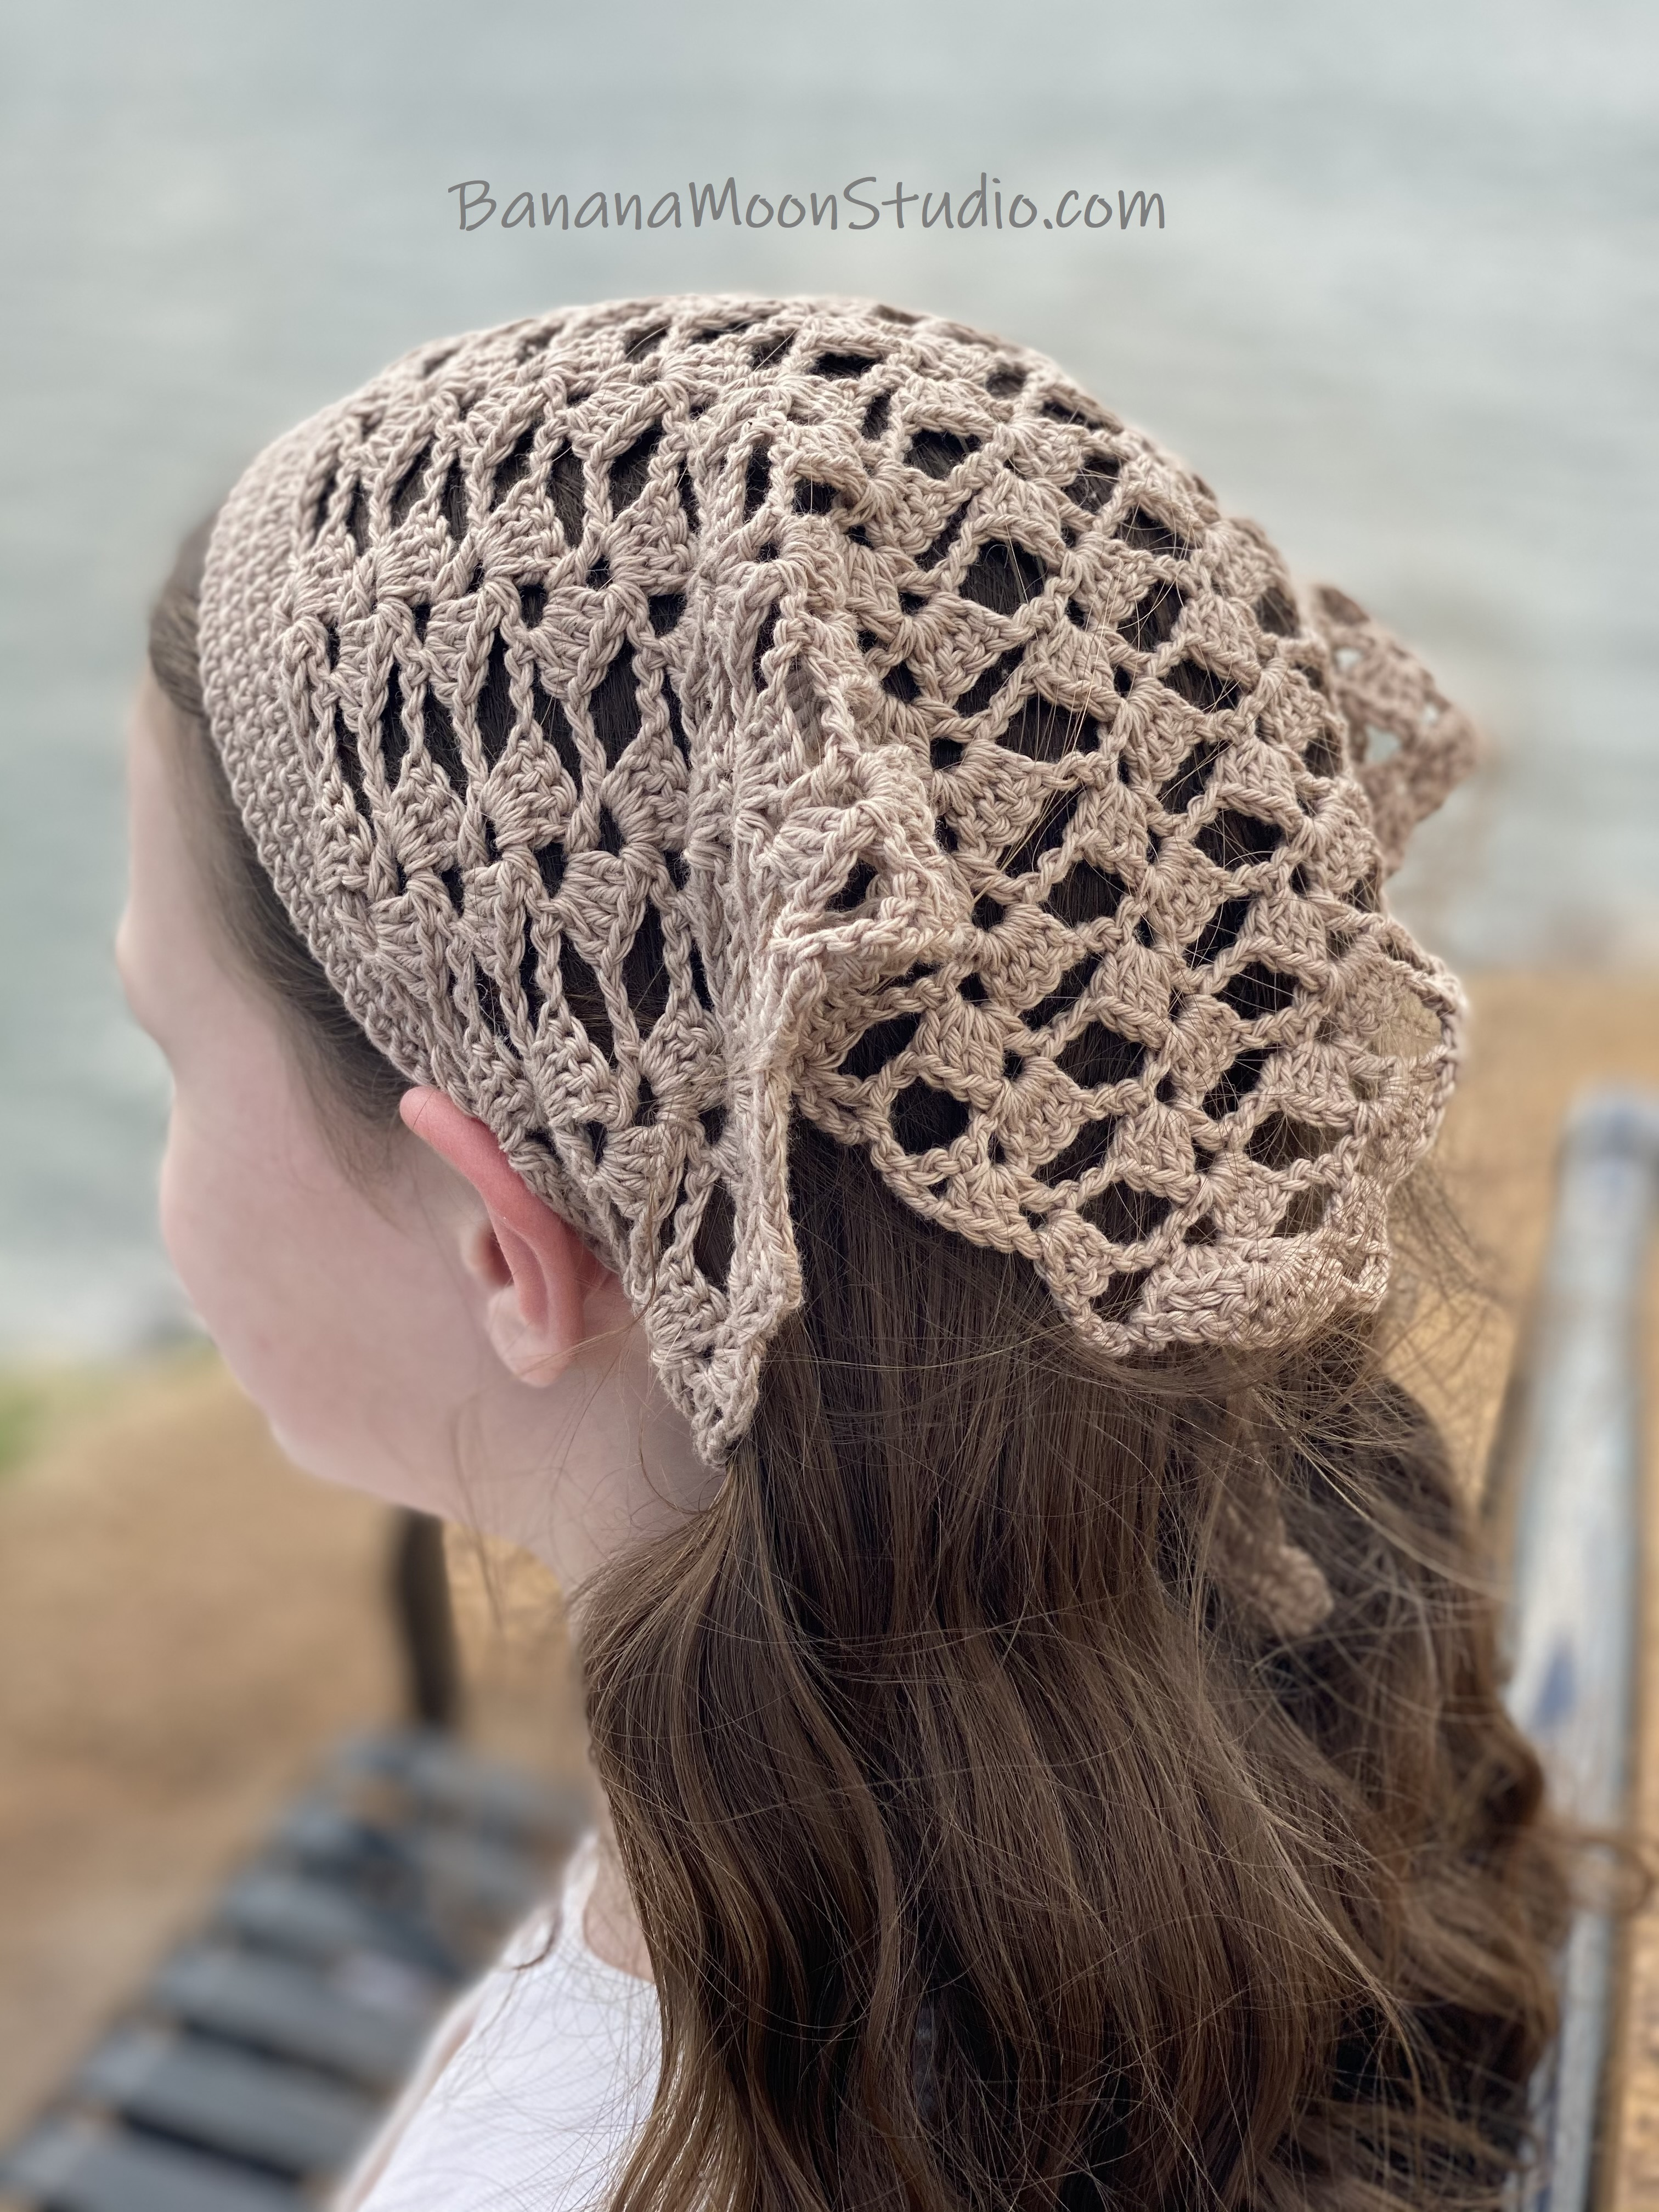 Girl wearing a crochet lace hair kerchief and sitting on a bench by the water. Text reads: BananaMoonStudio.com